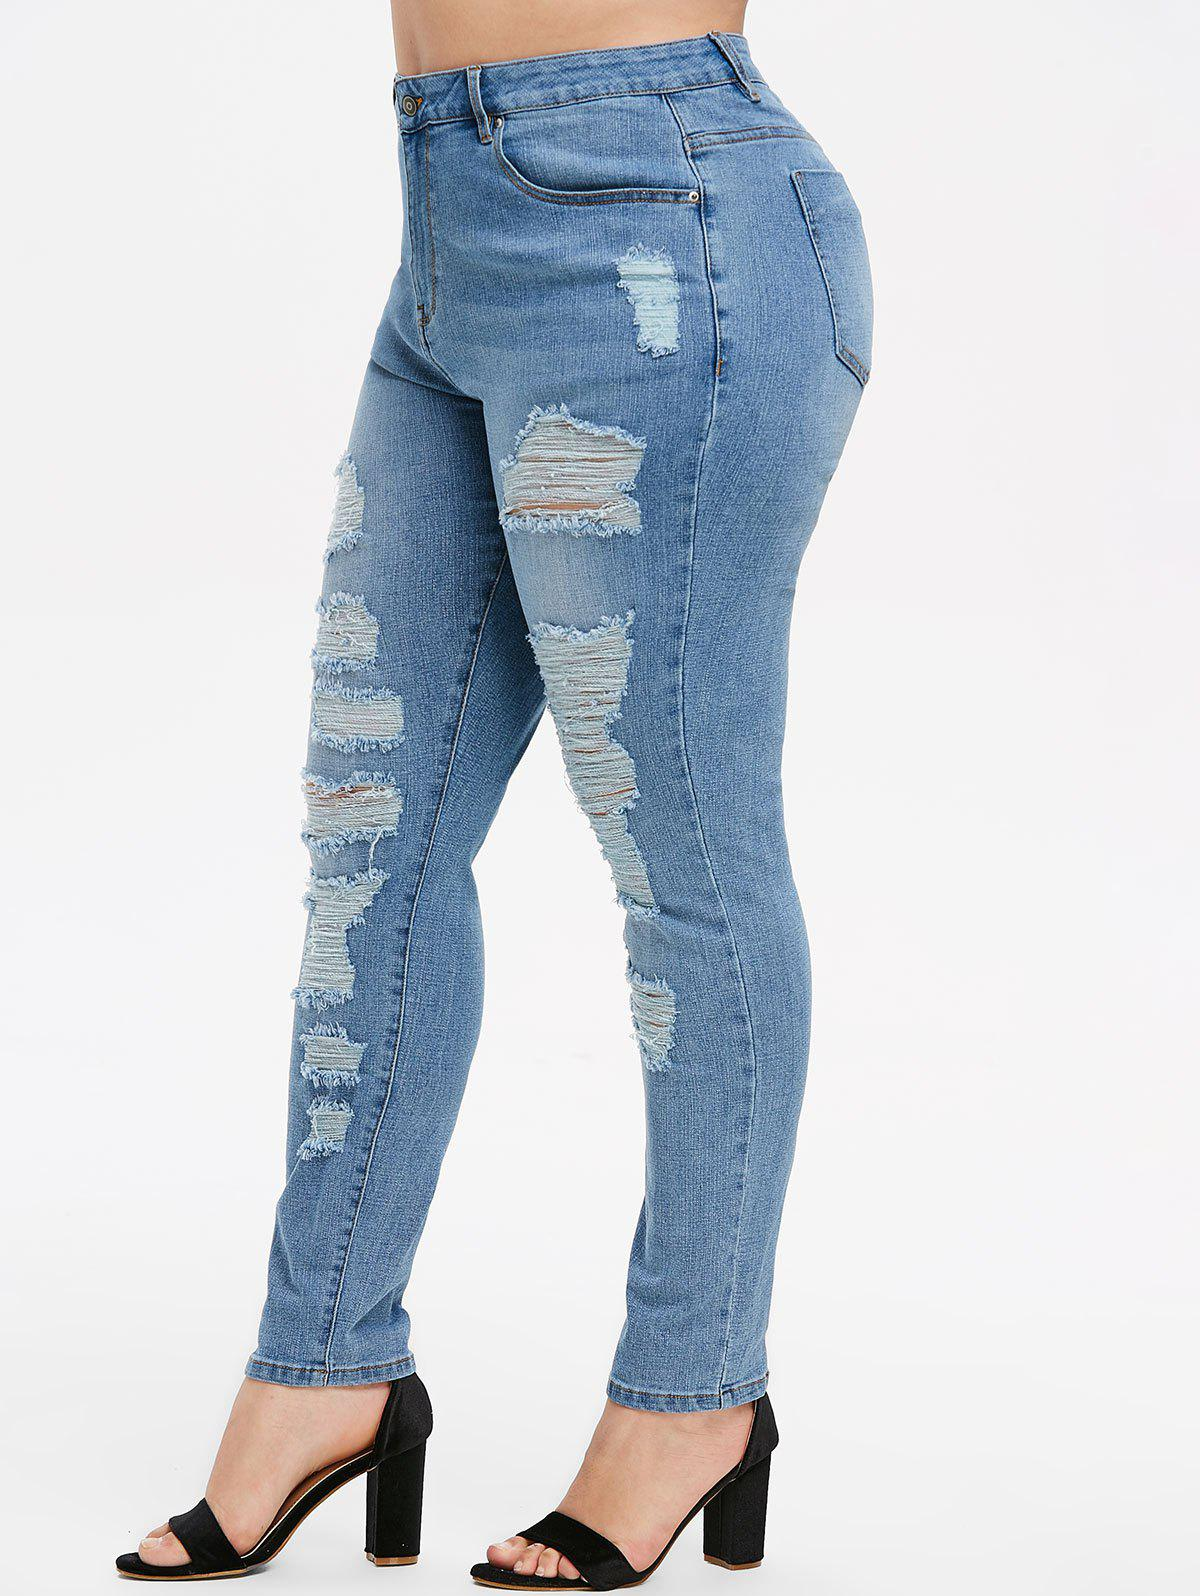 Shop Plus Size Distressed Skinny Jeans